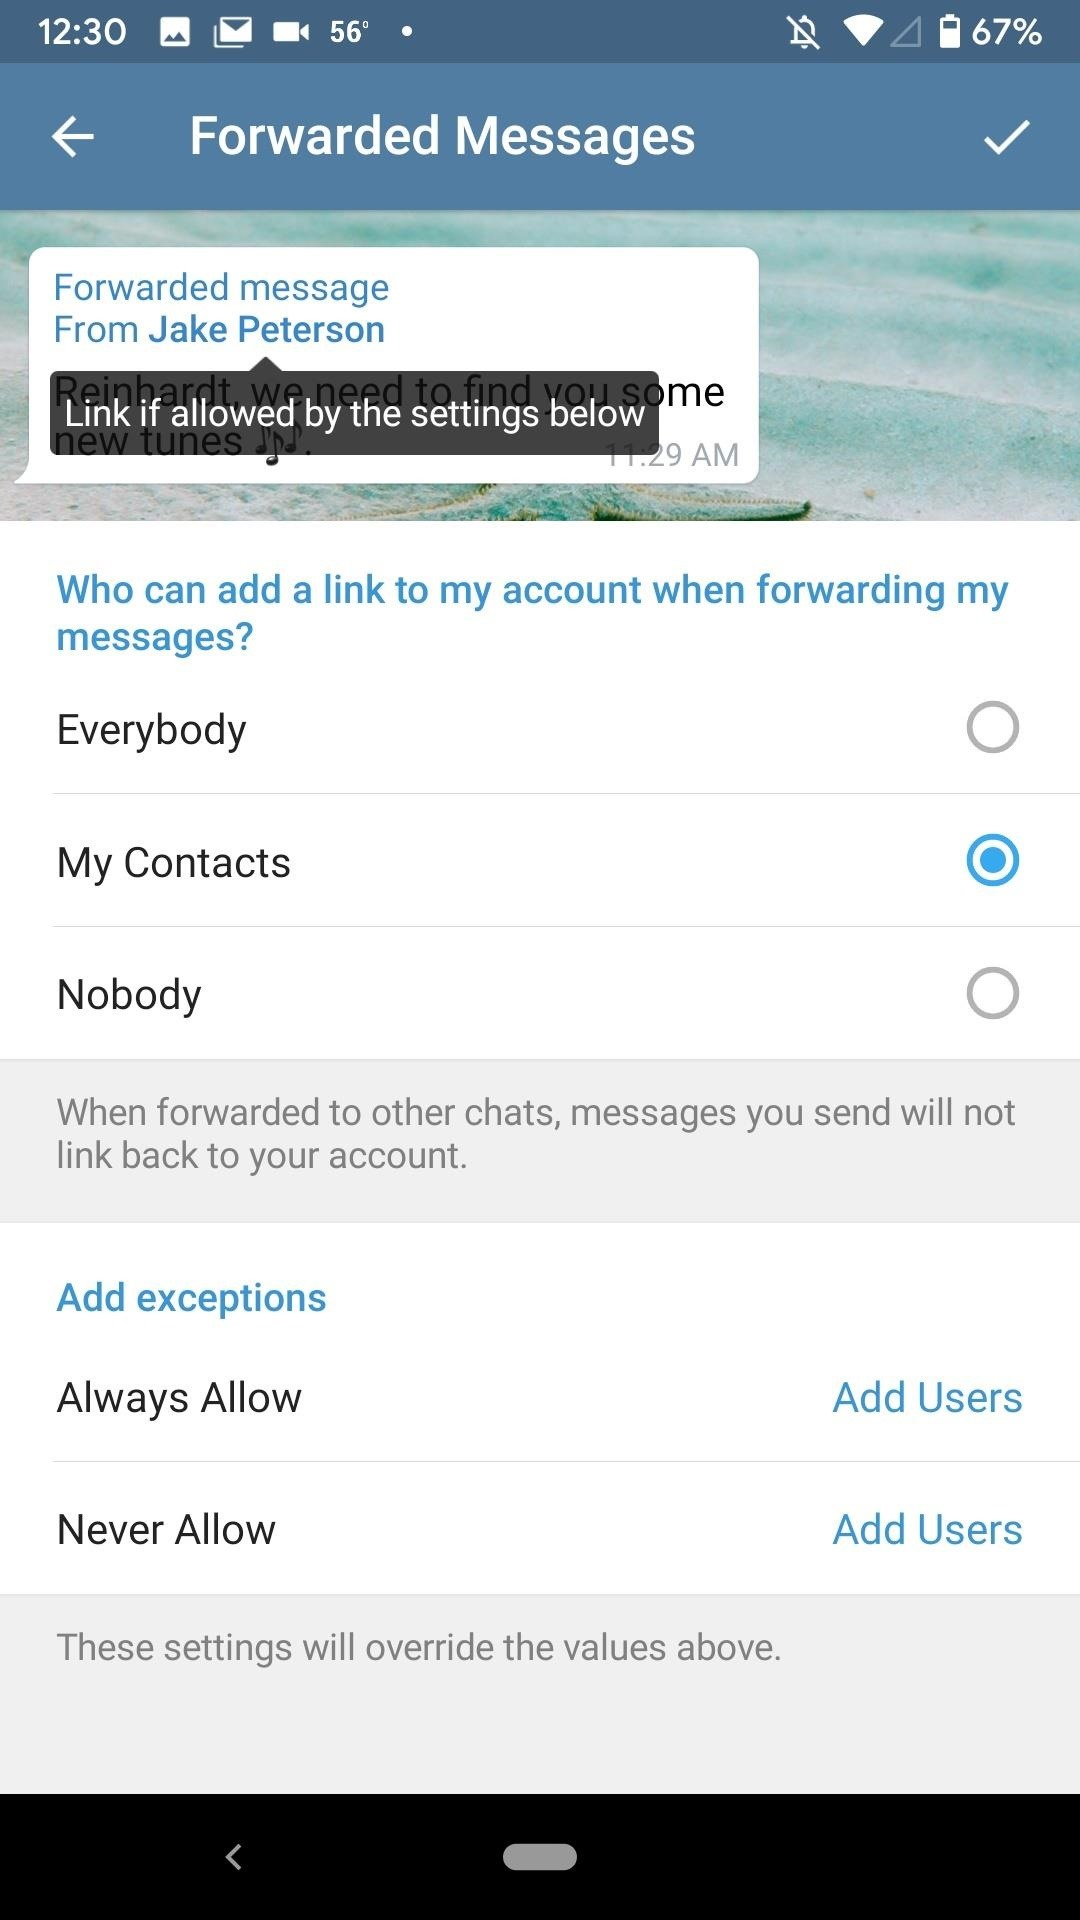 Prevent Others from Sharing Your Telegram Account Link When Forwarding Your Messages